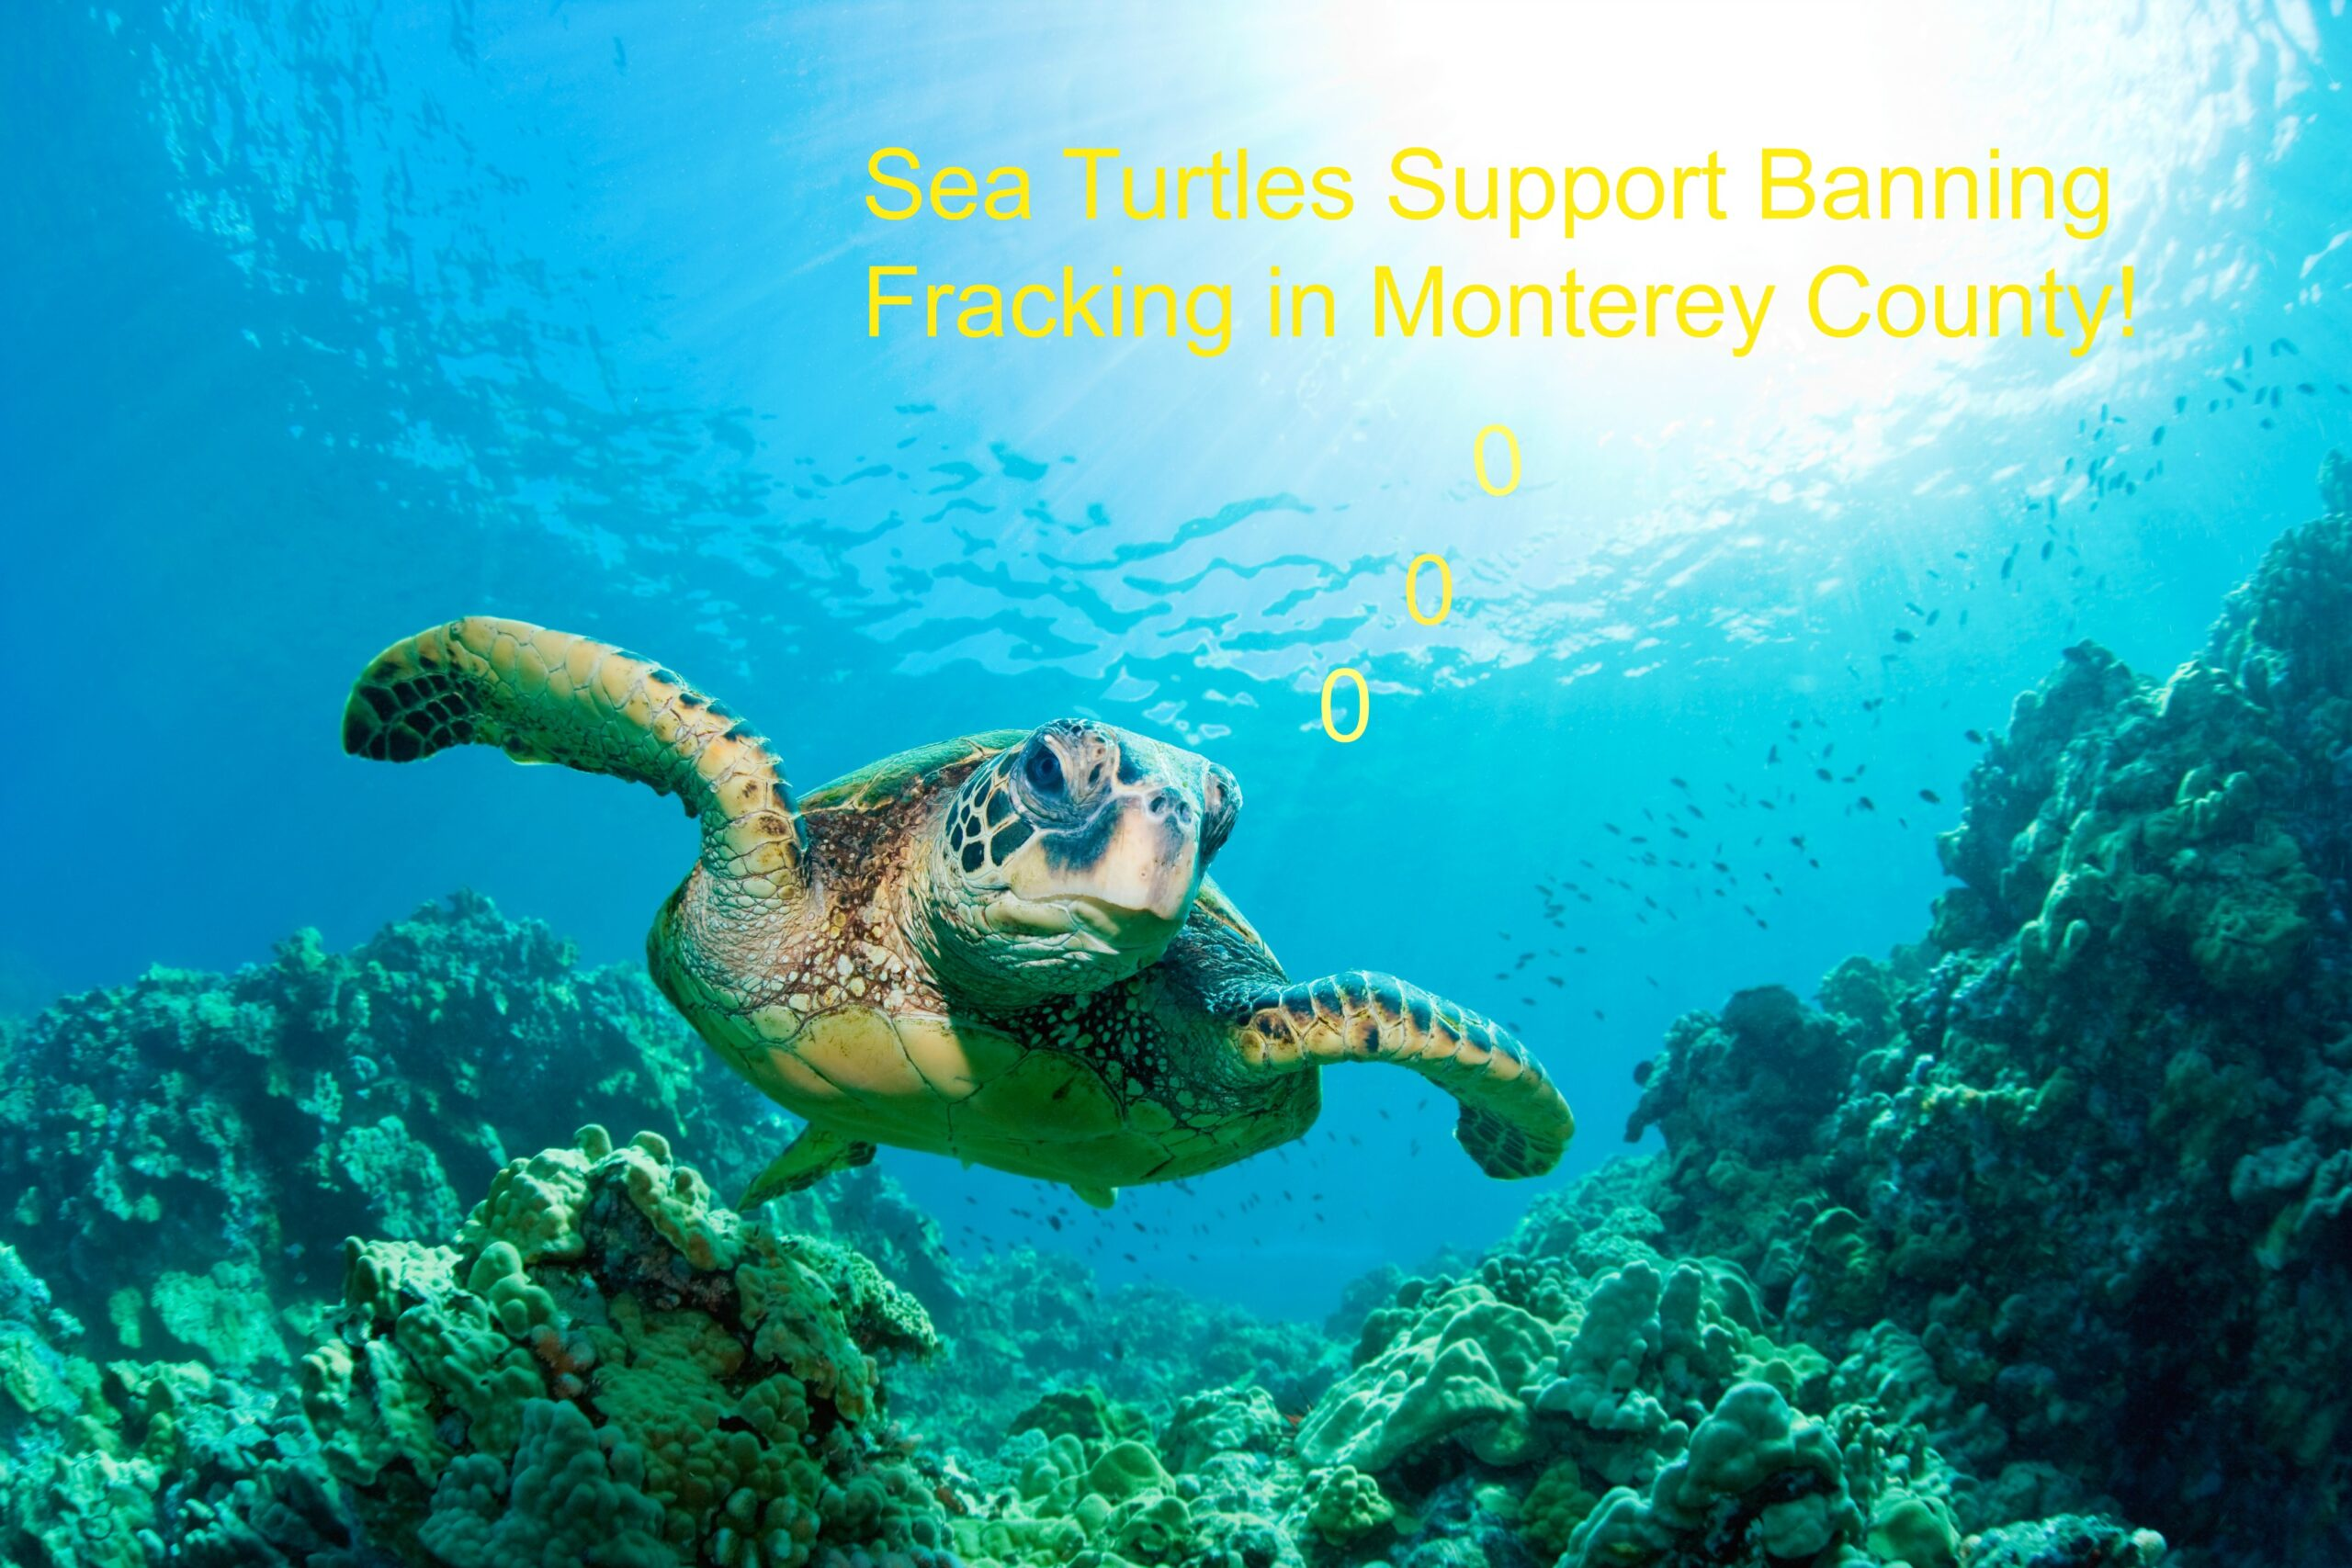 Voters Have Chance to Ban Fracking in Monterey County, California